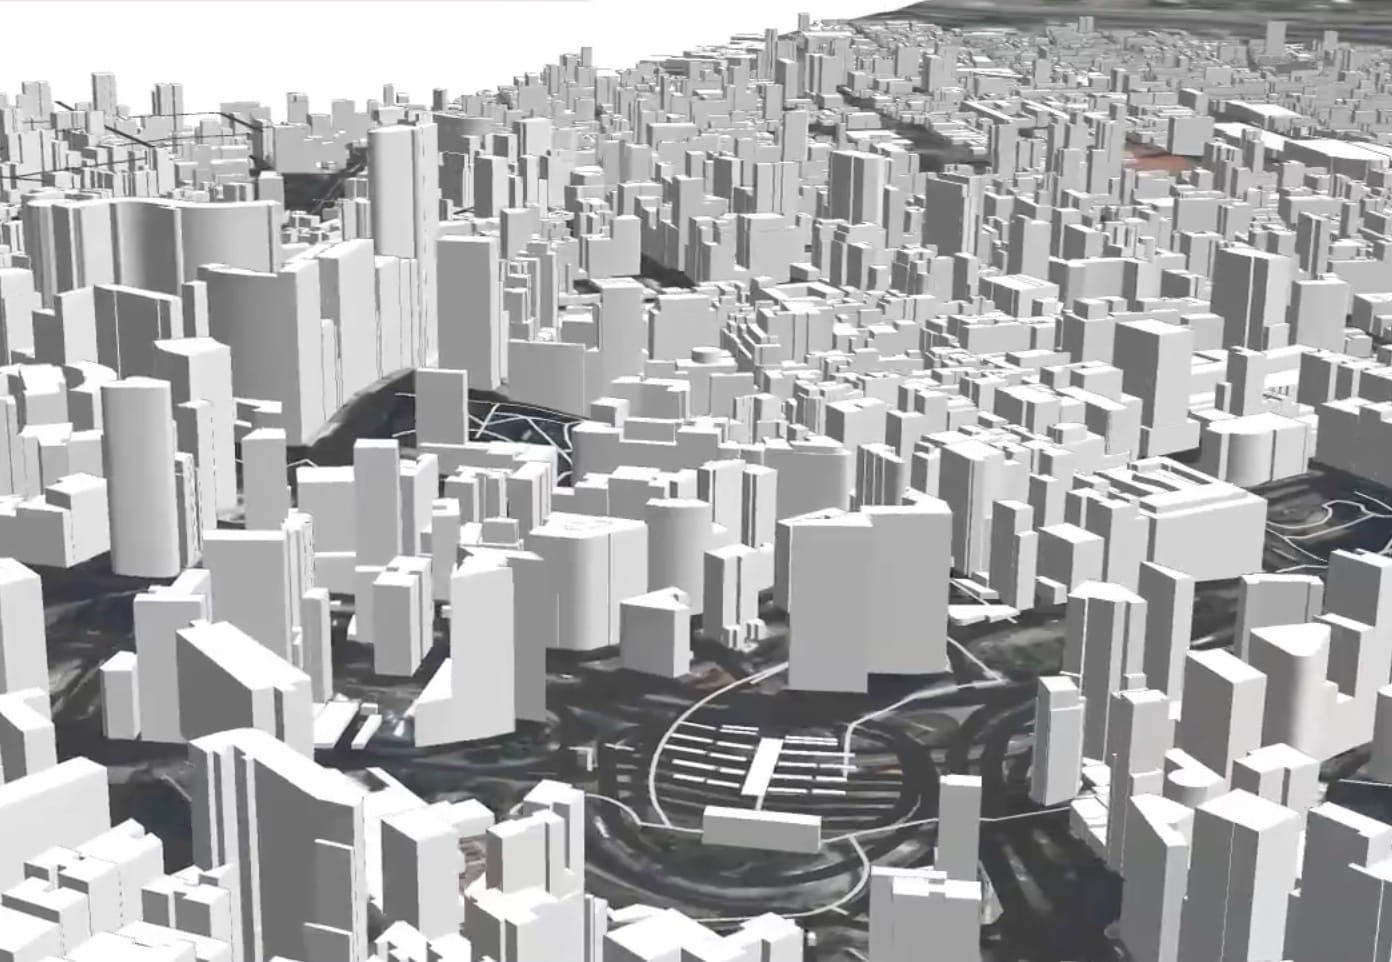 A 3D model of a city instantly created with PlaceMaker